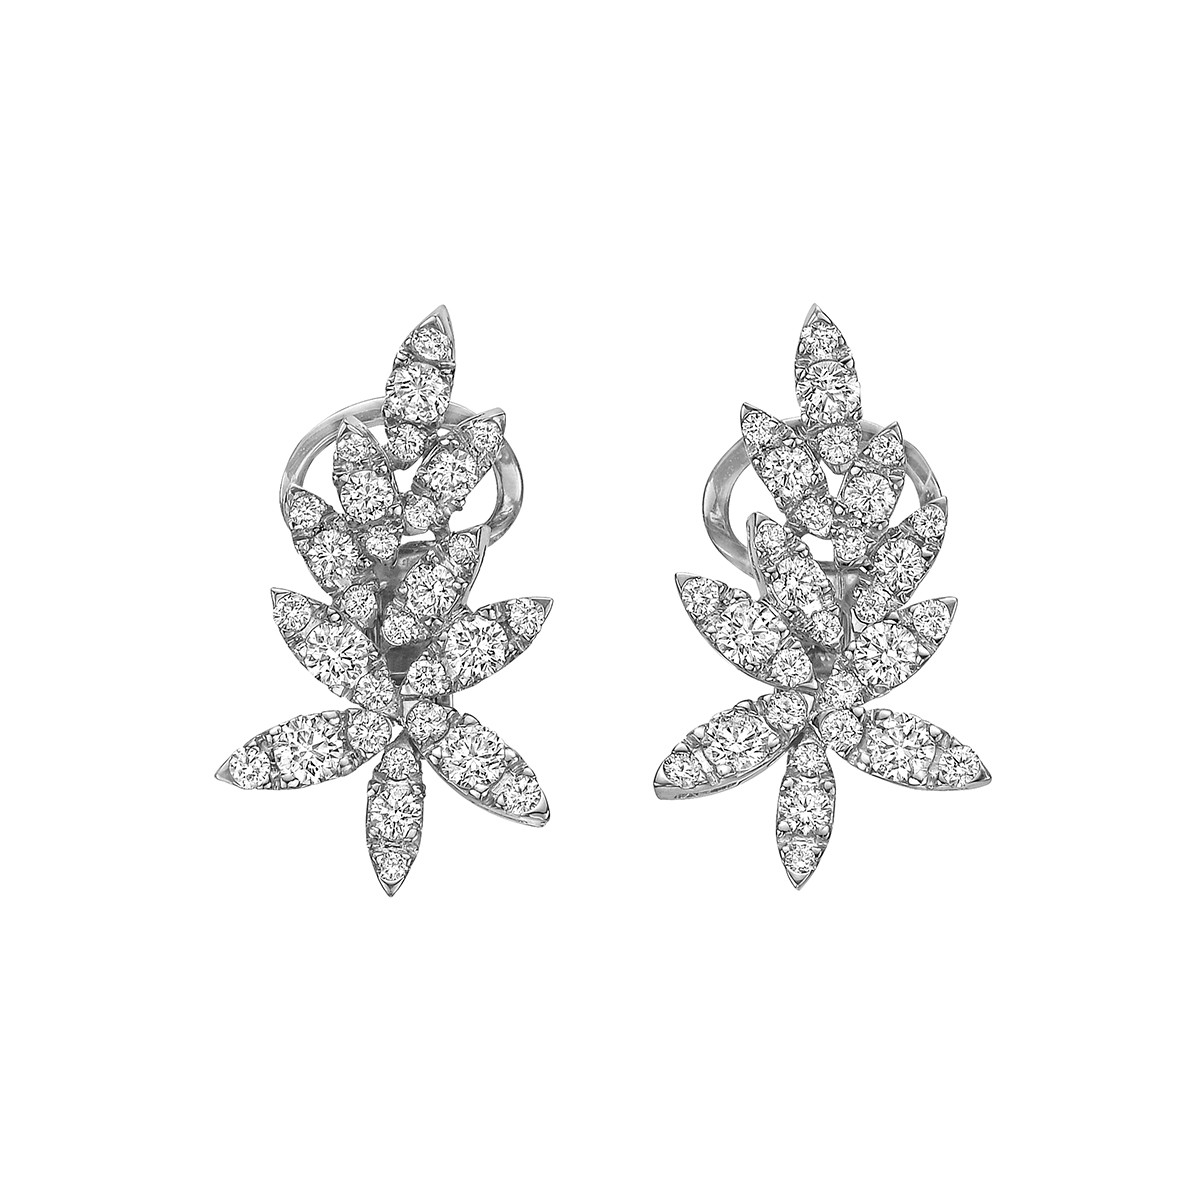 18k White Gold & Diamond Spray Earrings